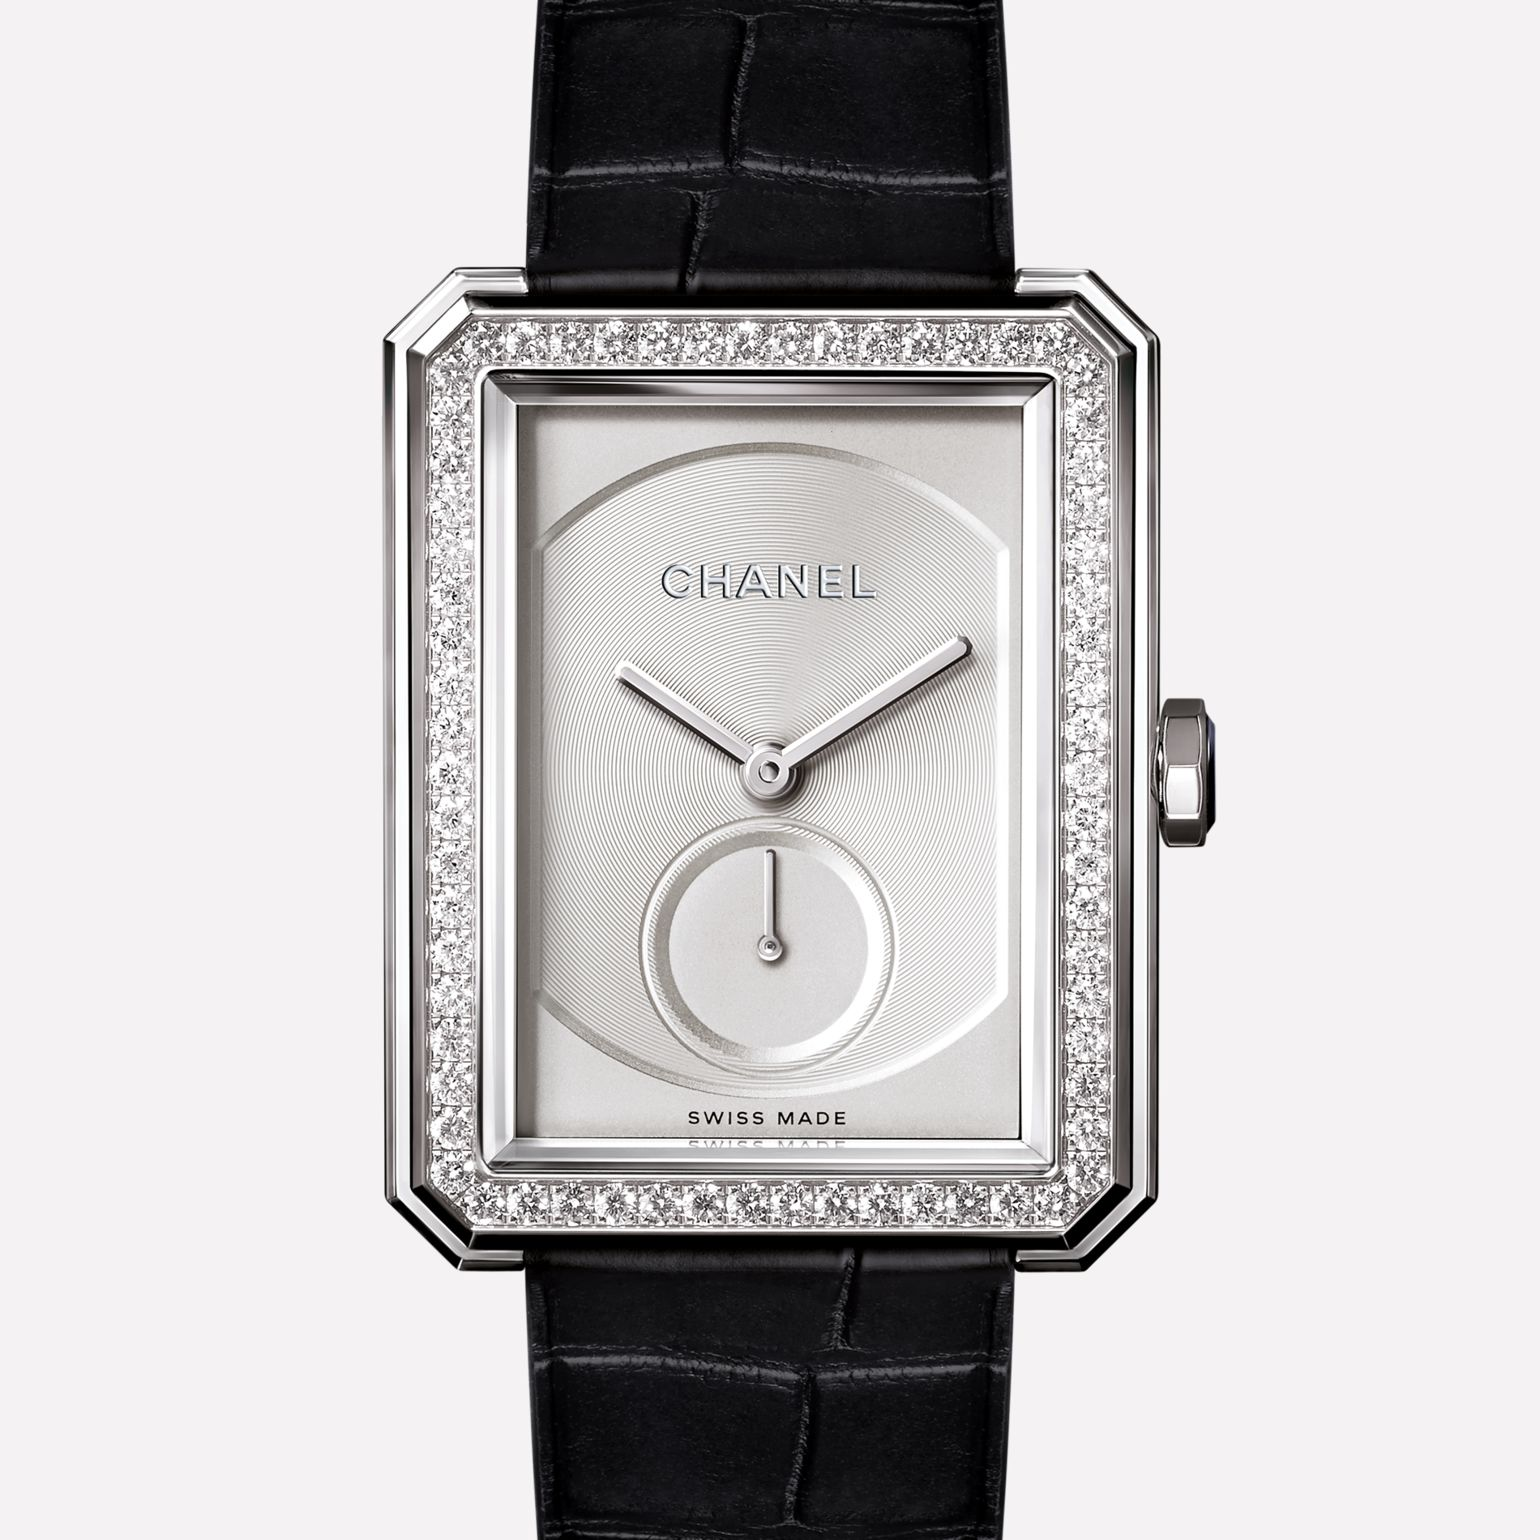 BOY∙FRIEND Large version, white gold set with diamonds and alligator strap